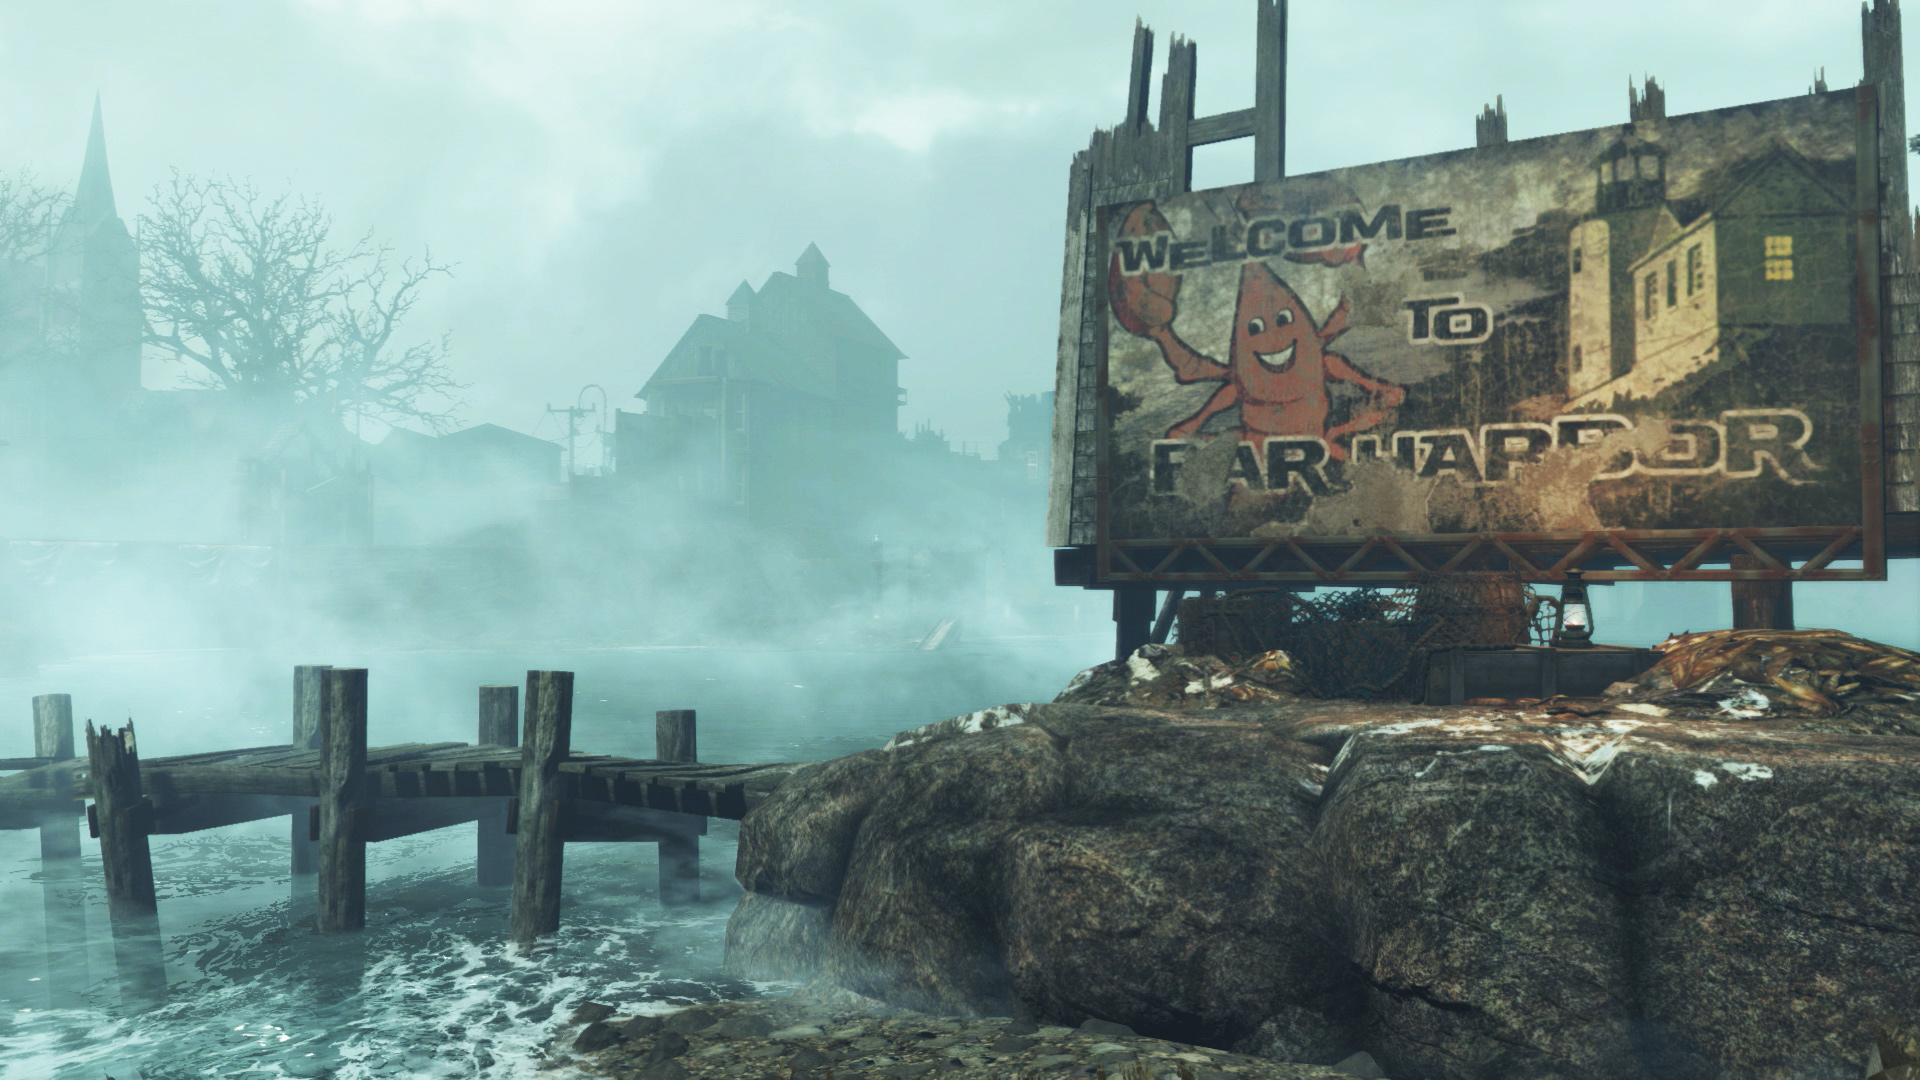 Fallout 4 Far Harbor: Tips to get you ready